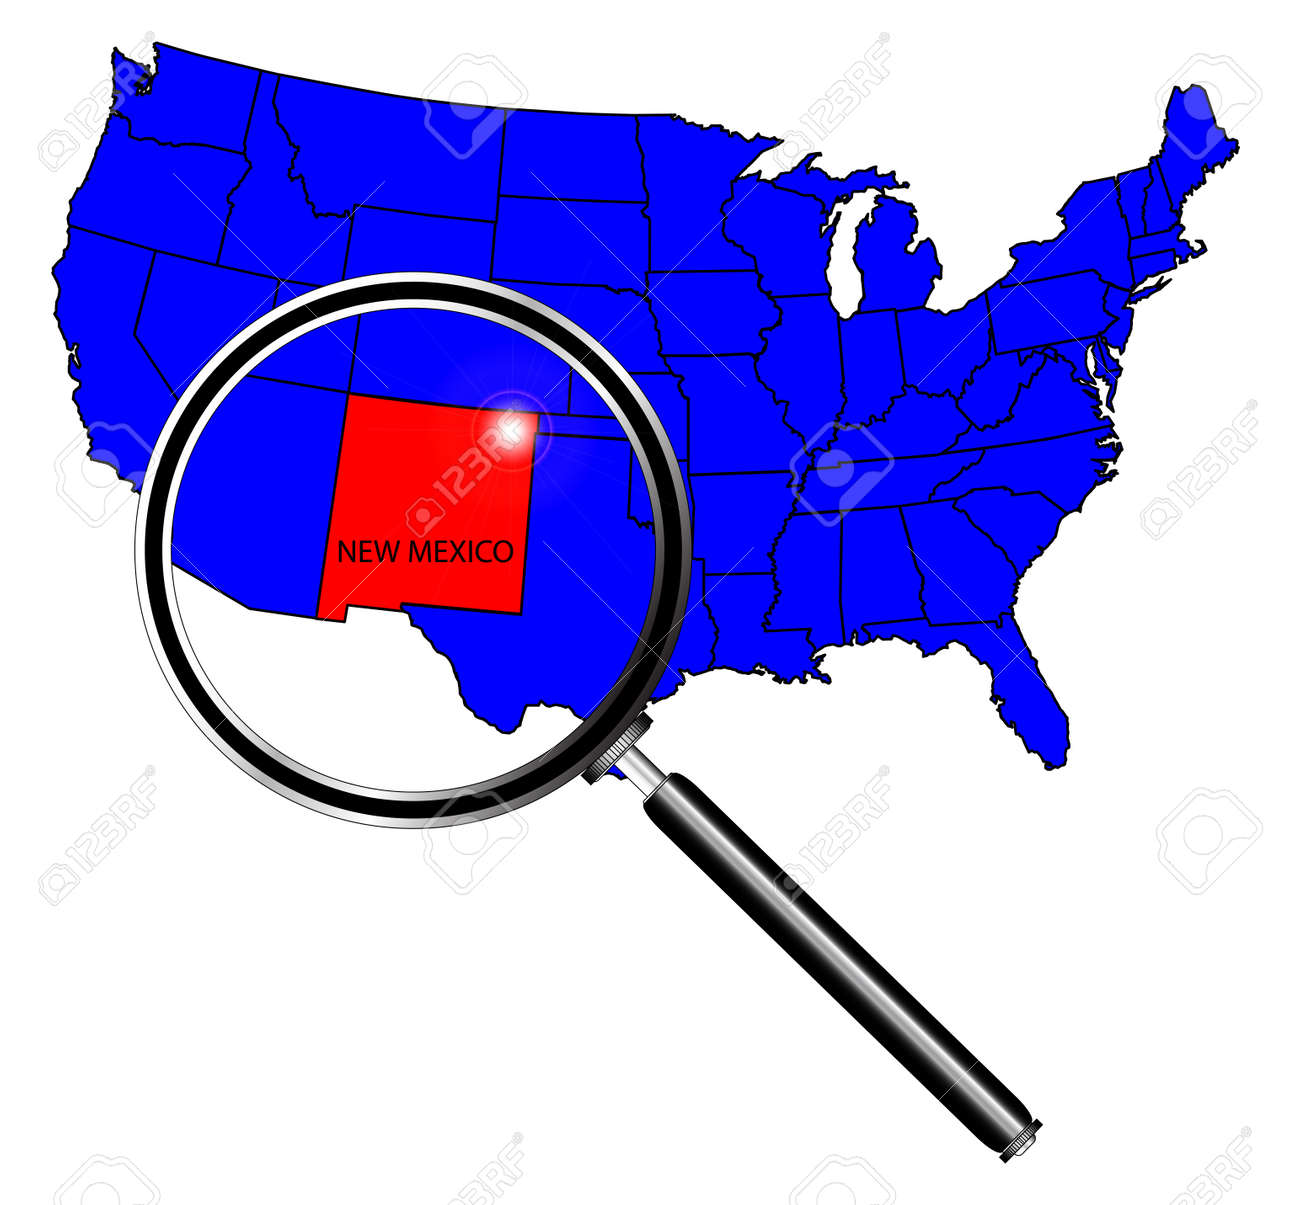 New Mexico State Outline Set Into A Map Of The United States - New mexico on us map